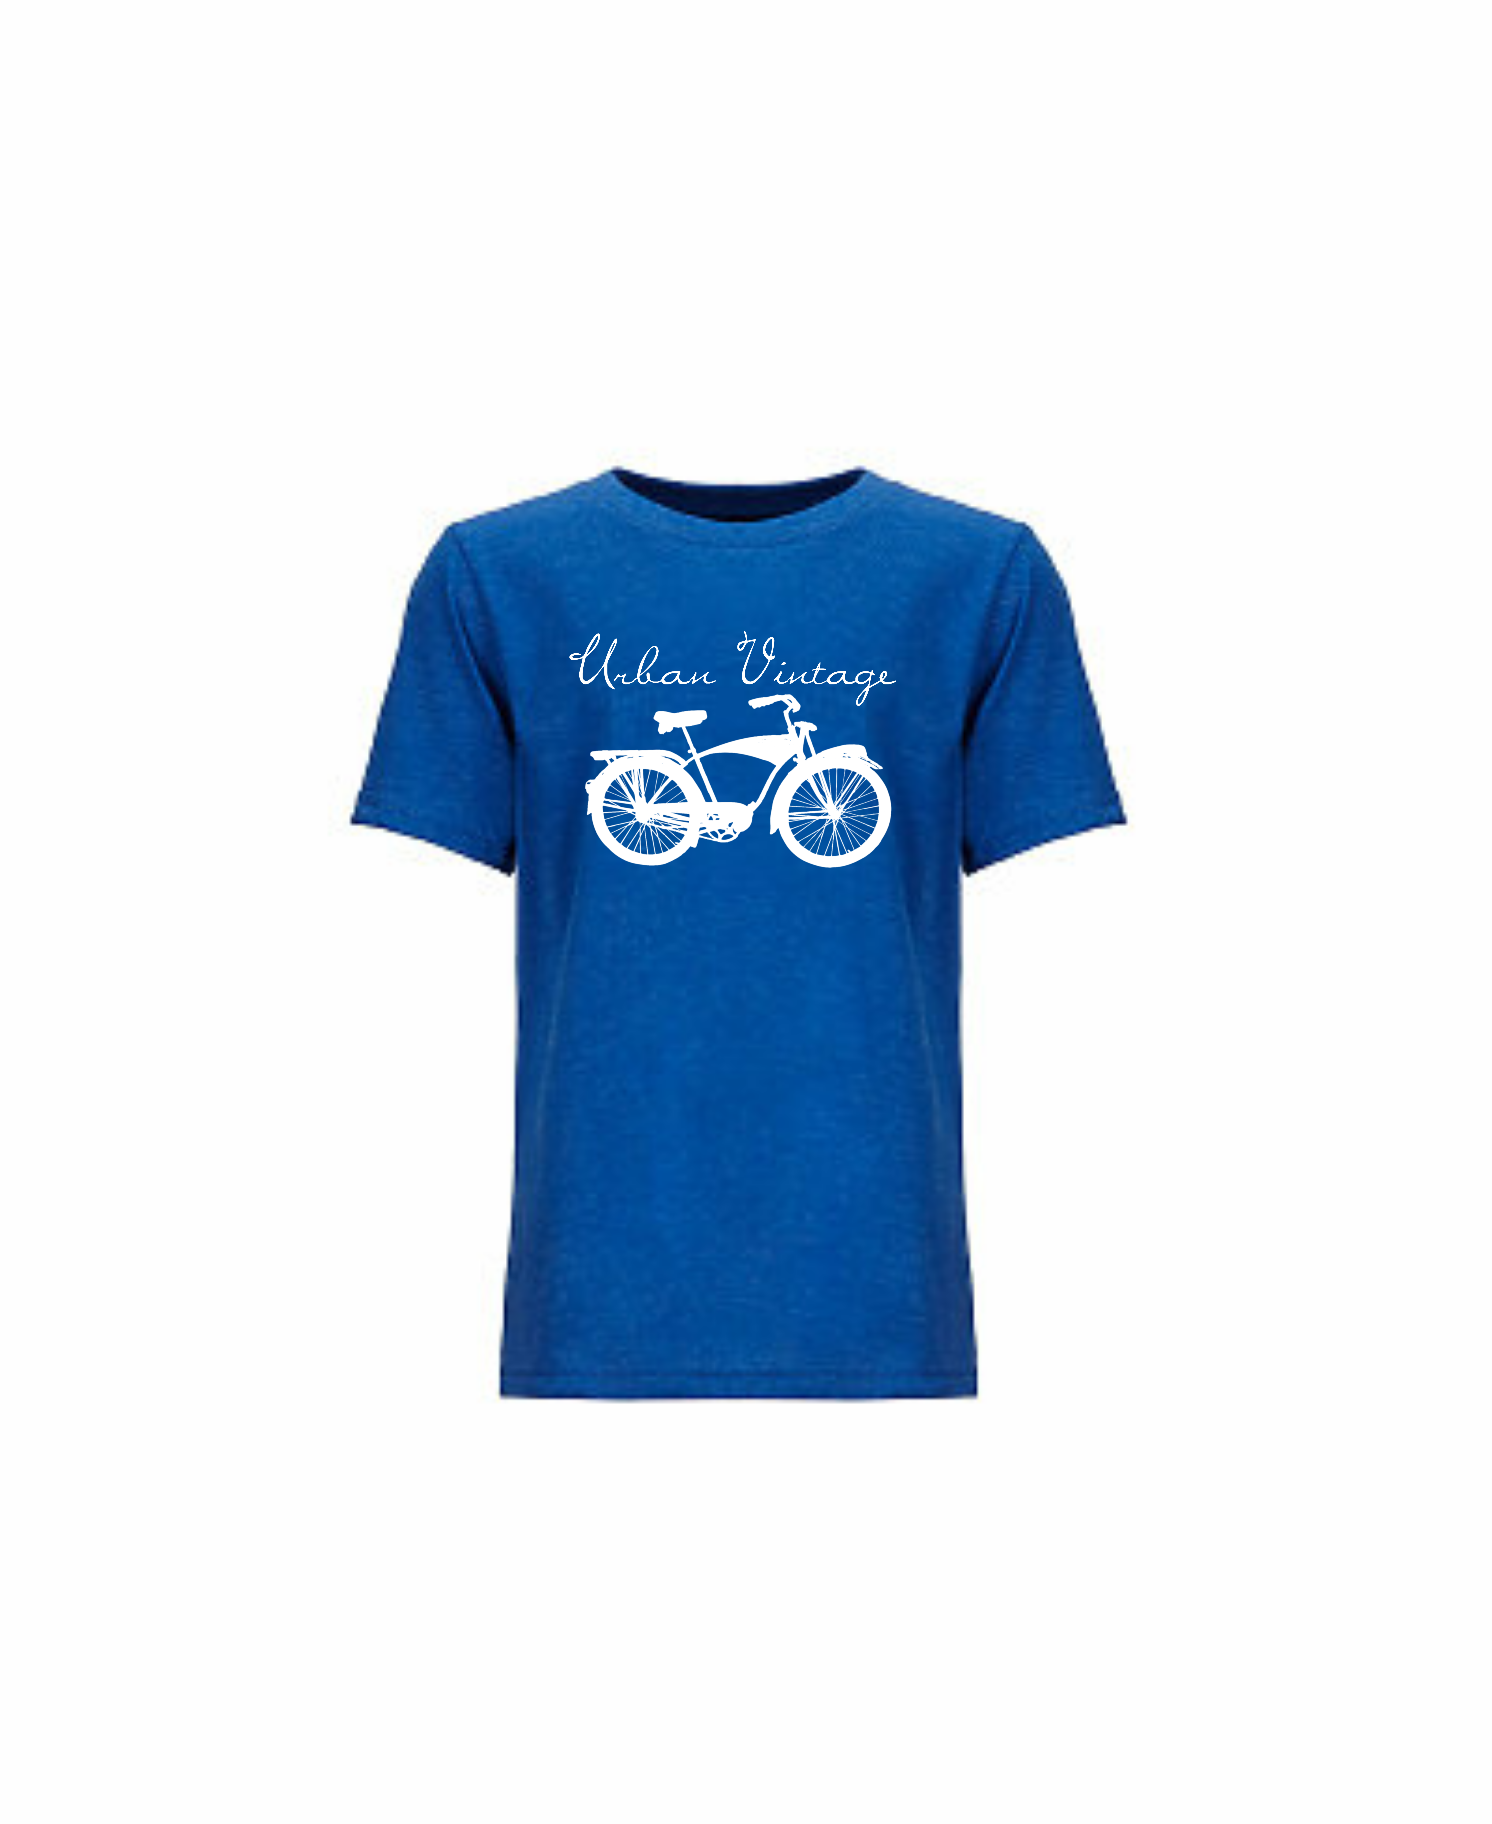 UV Boy's Playground T-Royal Blue/White